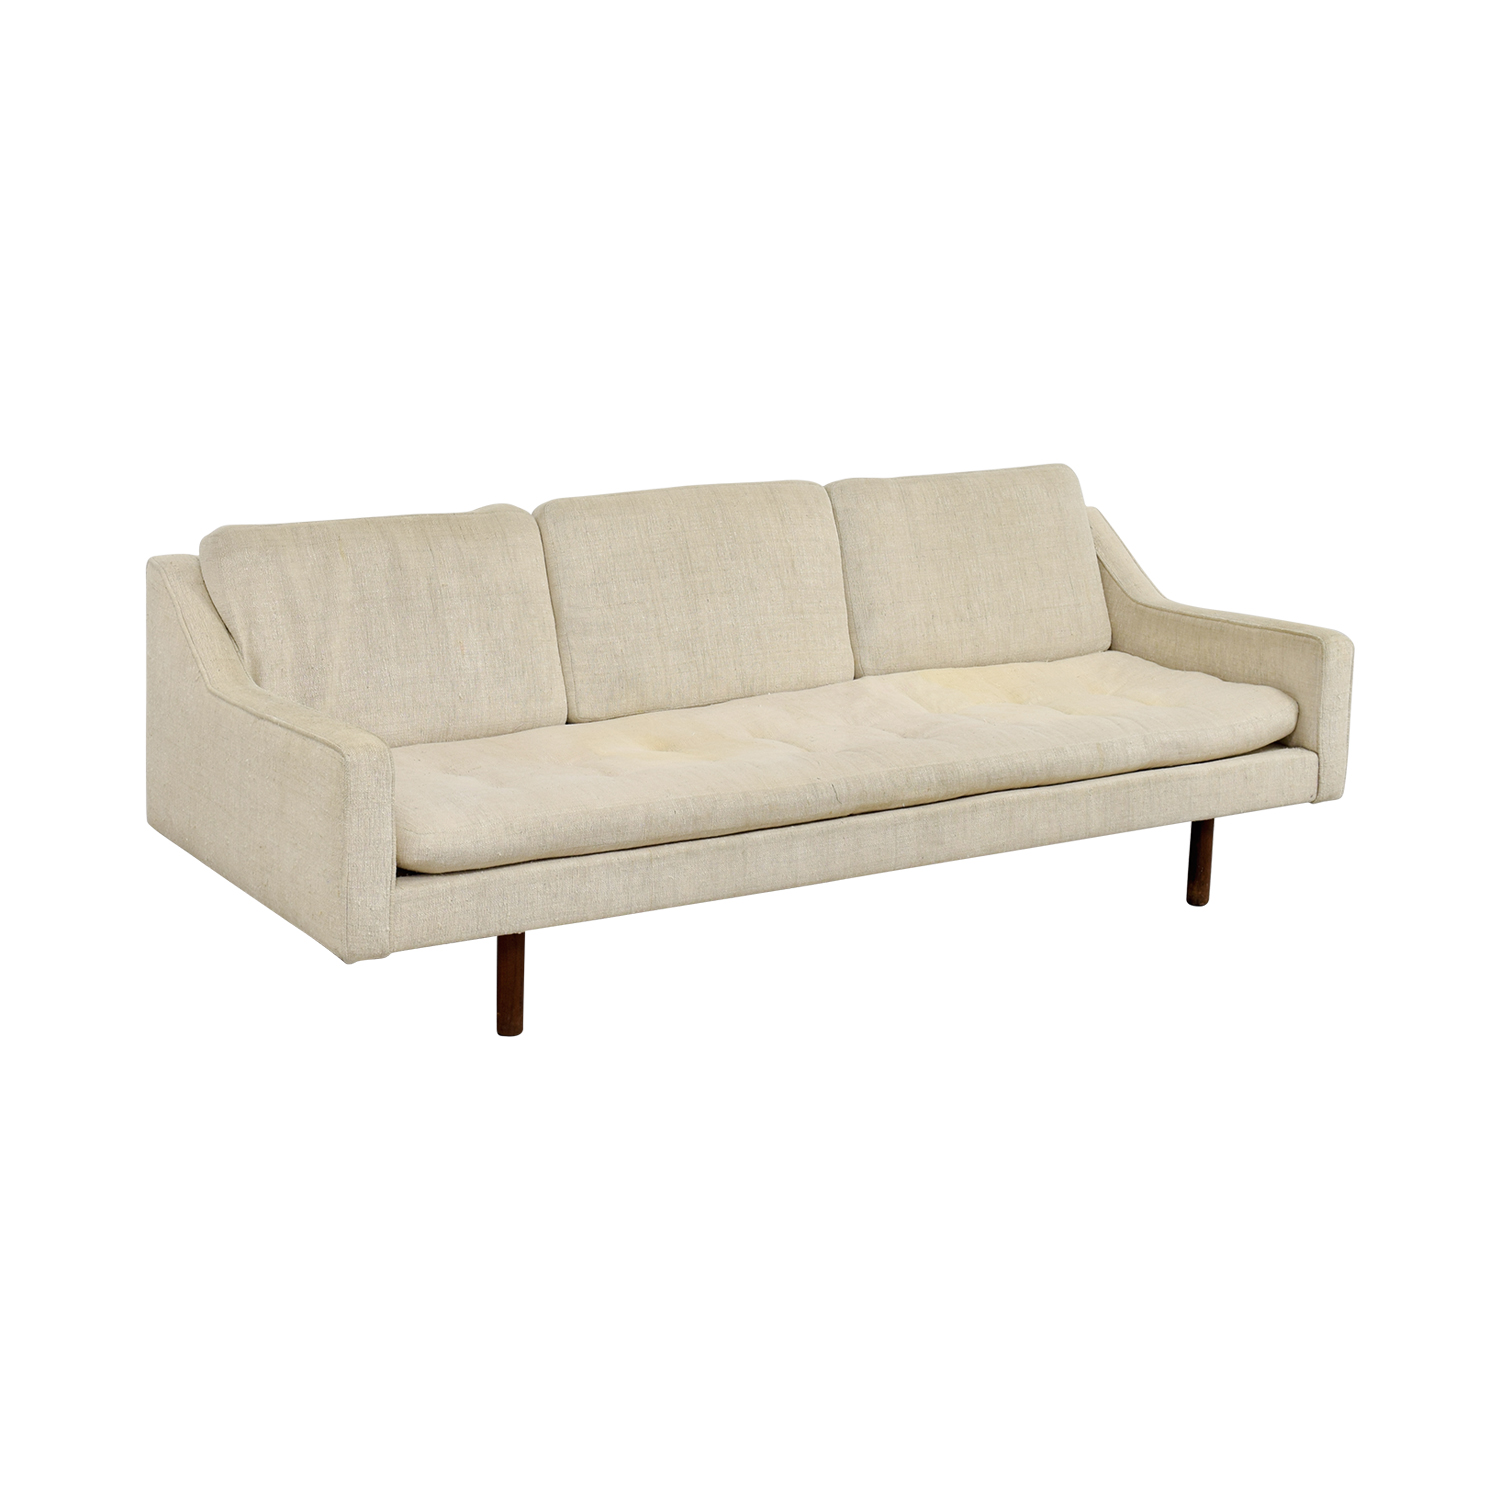 90 Off Vintage Mid Century White Single Cushion Sofa Sofas